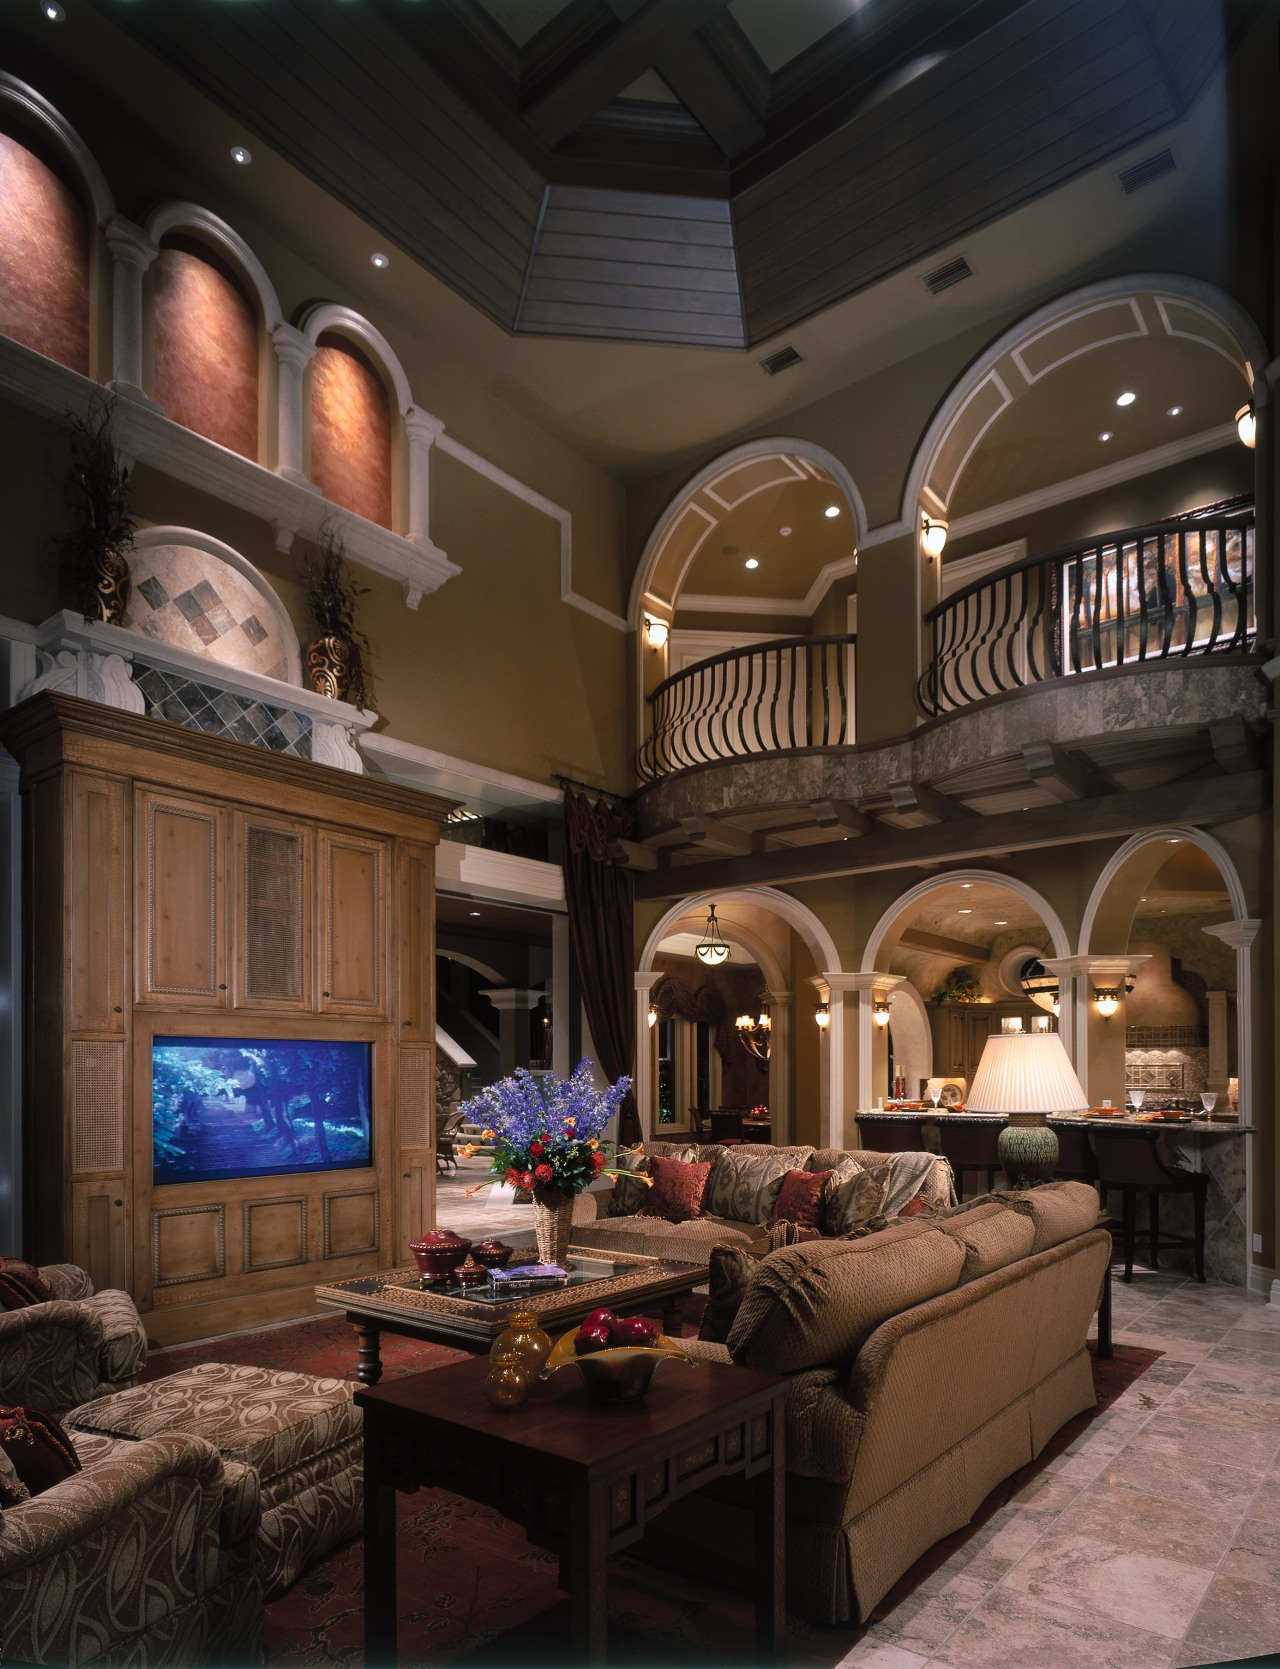 View of the living area ceiling, home, interior design, living room, room, black, brown